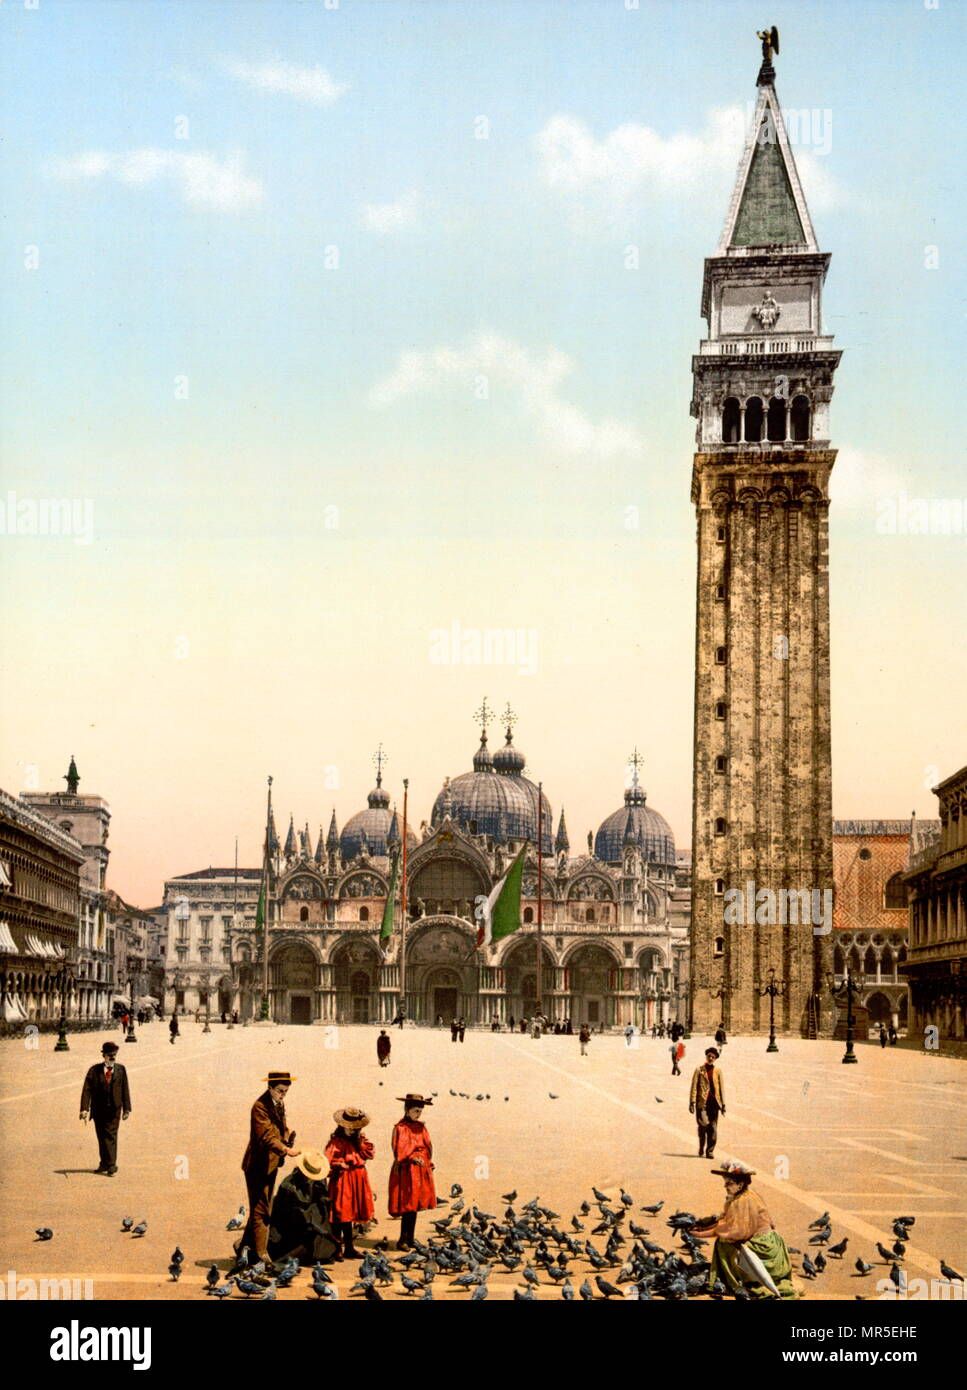 St Mark's Campanile (Campanile di San Marco) in Venice, Italy photographed two years before it collapsed 1900. located in the Piazza San Marco. It is one of the most recognizable symbols of the city. The campanile collapsed 1902 and was re-built in 1912 - Stock Image